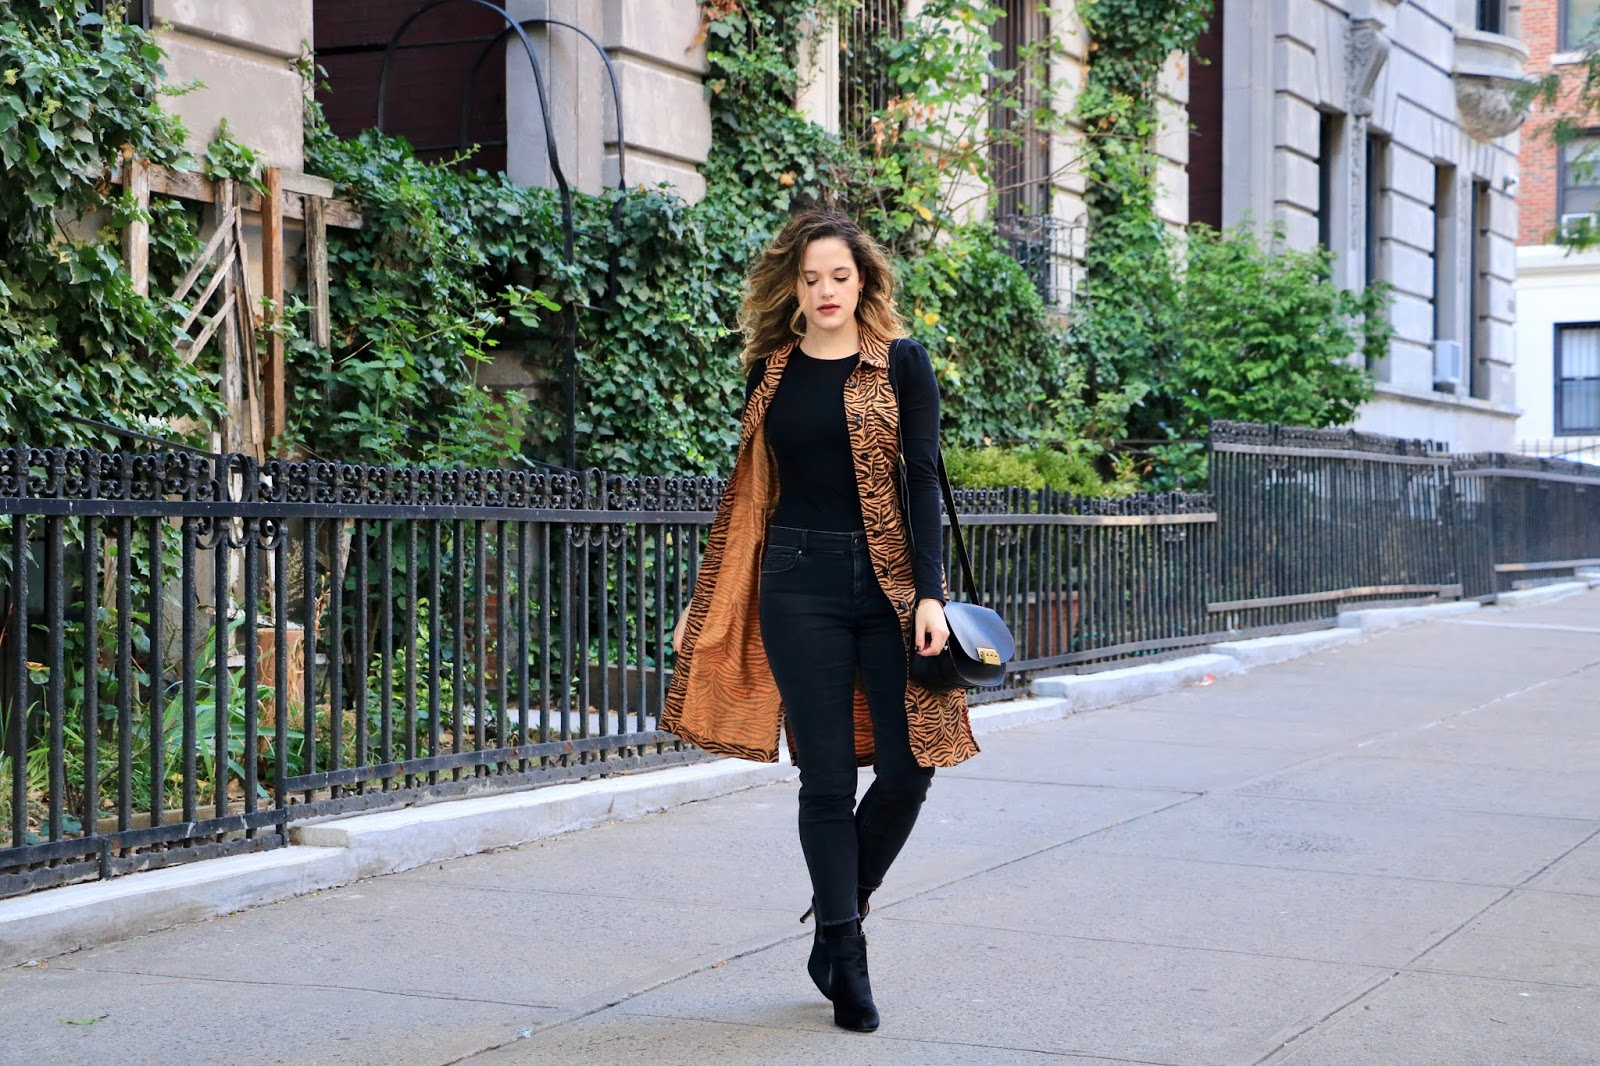 Nyc fashion blogger Kathleen Harper wearing a fall outfit idea for work and weekend.